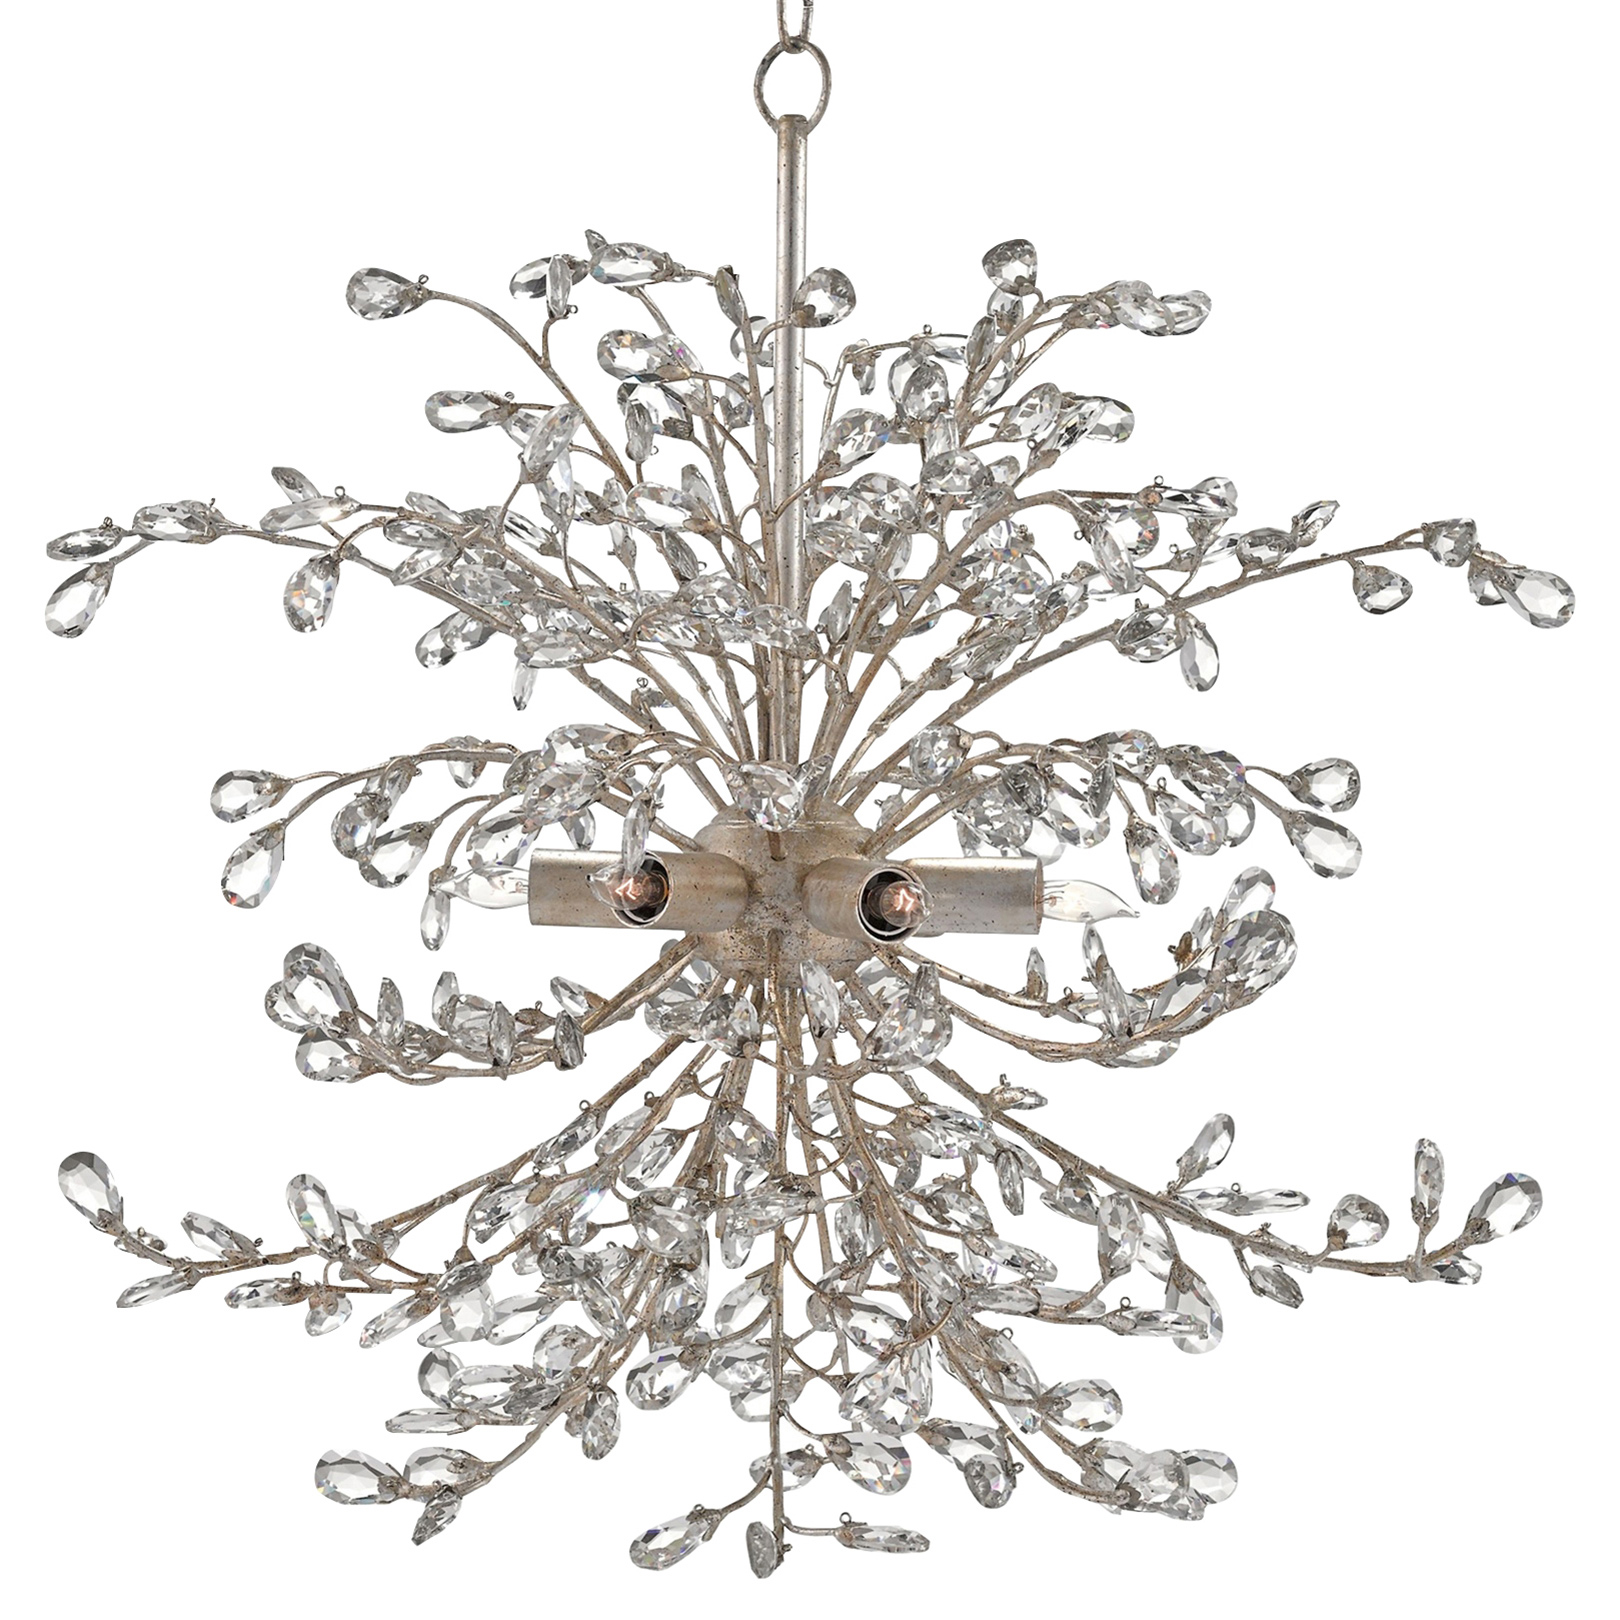 Lexine Regency Crystal Wreath Silver Bud Chandelier